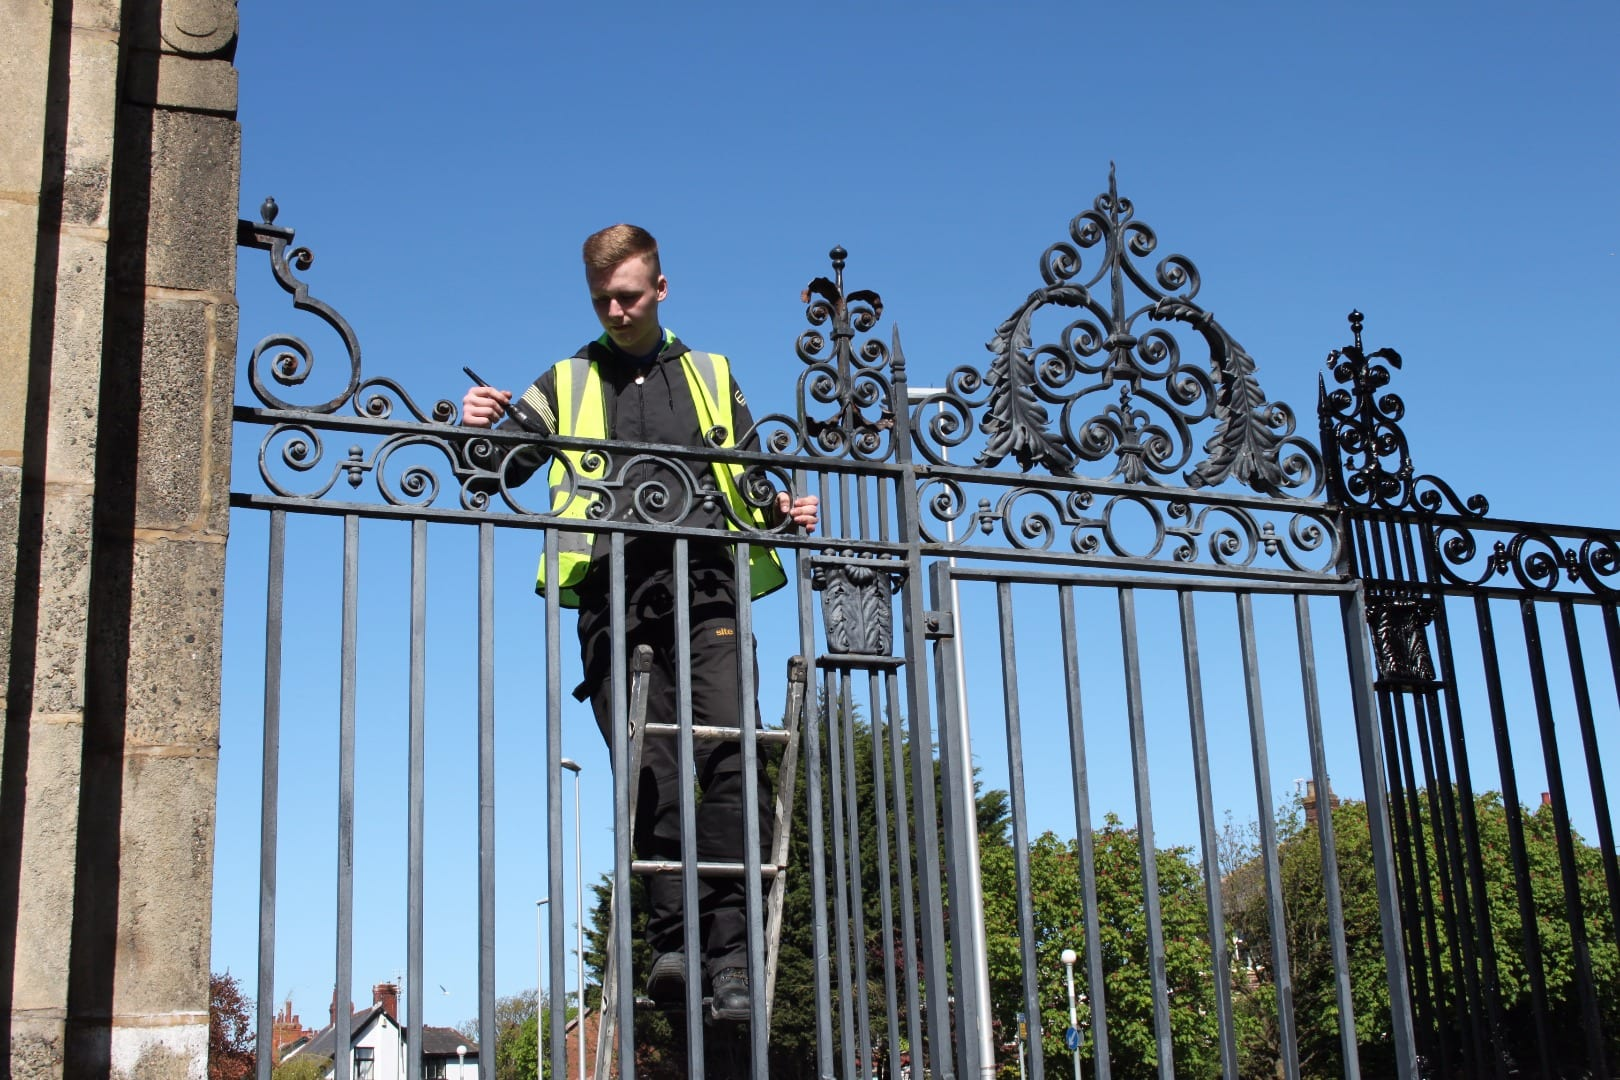 Repainting the gates at Blackpool Stanley Park